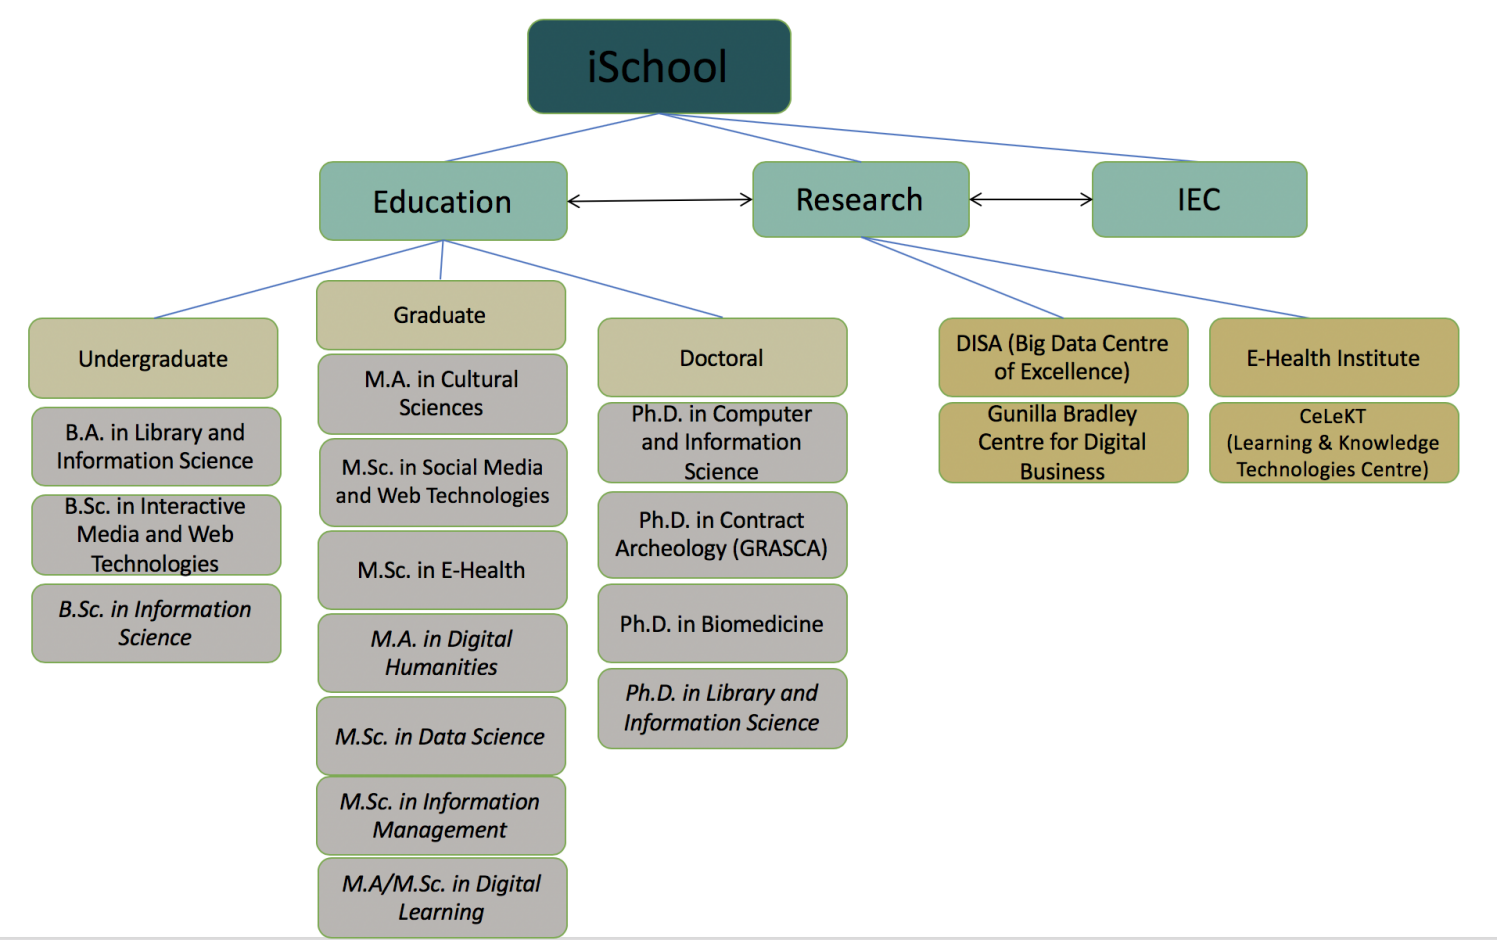 A graphical view of the iSchool concept at Linnaeus University, October 2017.